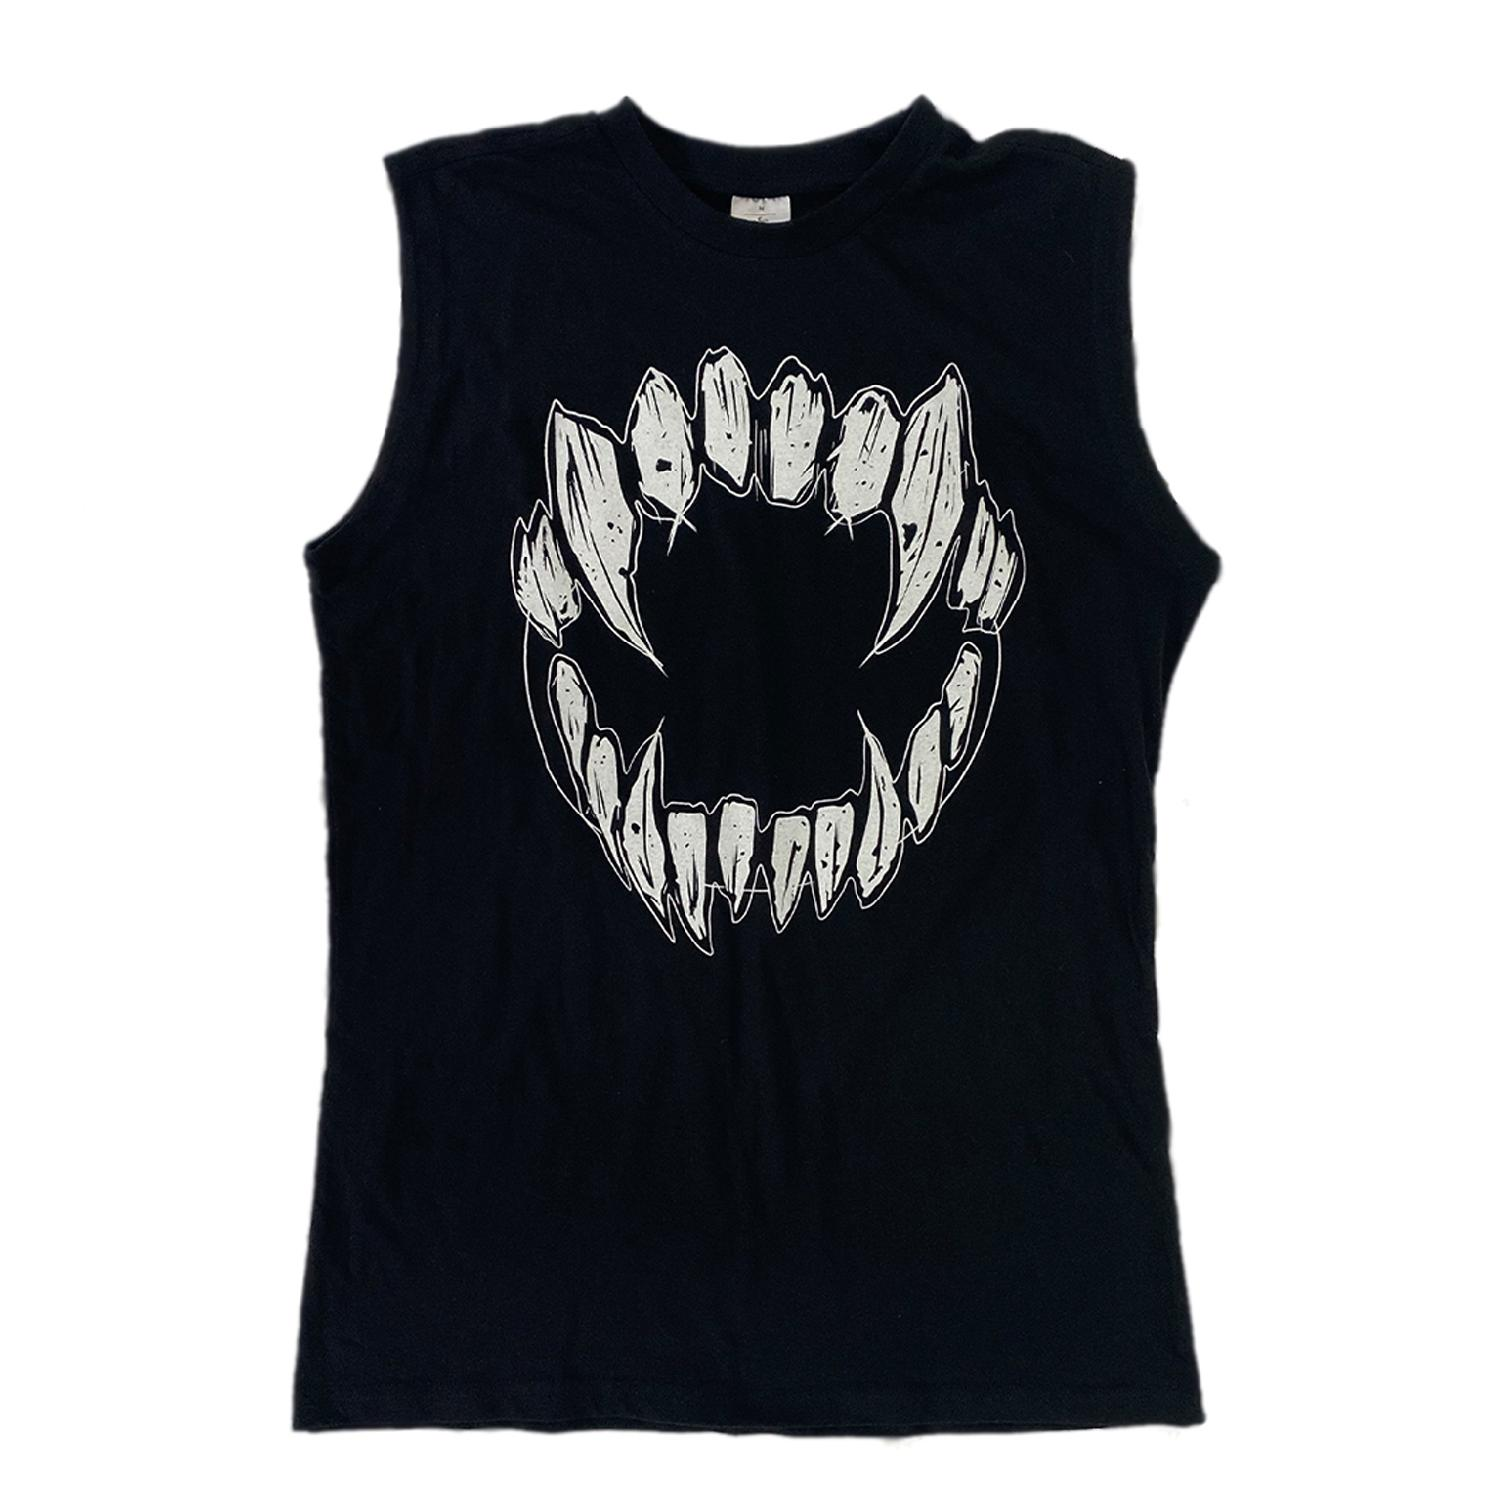 GHOSTKID Ghøstkid - Teeth Sleeveless Shirt Shirt black